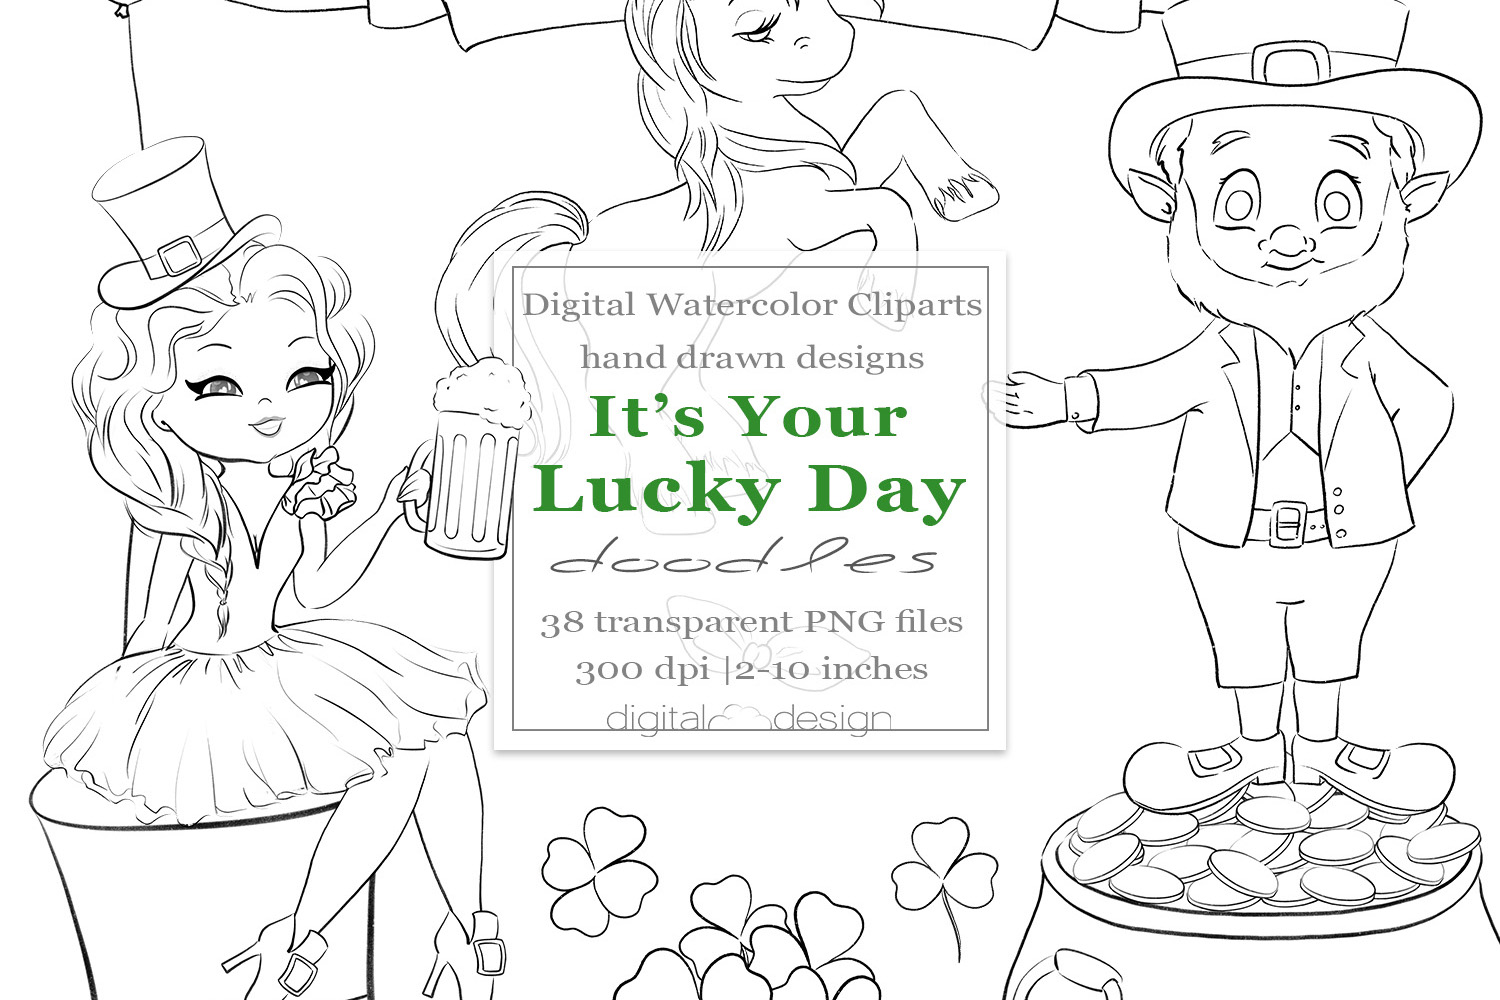 Its Your Lucky Day - Doodles example image 1